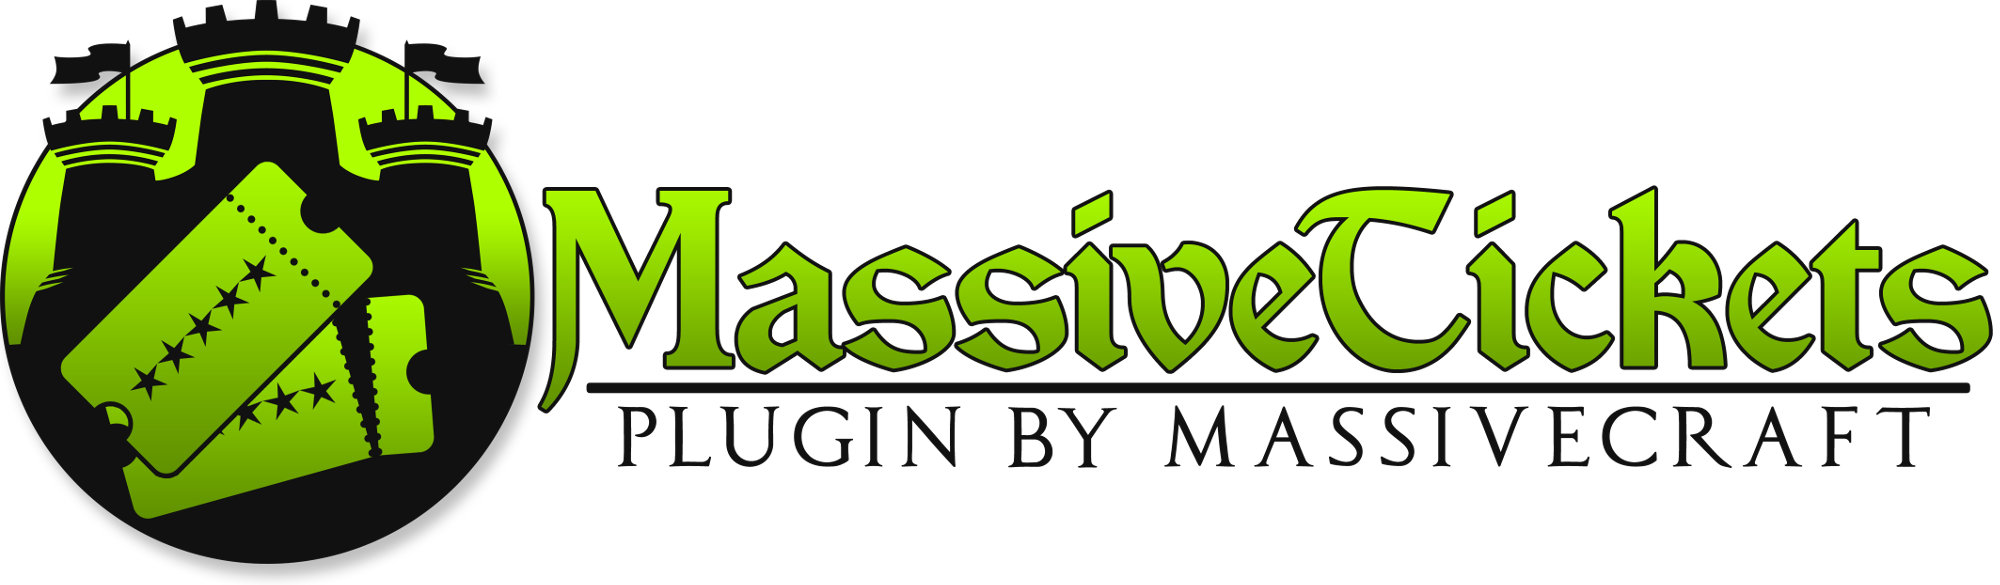 massivecraft-logotype-plugin-massivetickets-2000